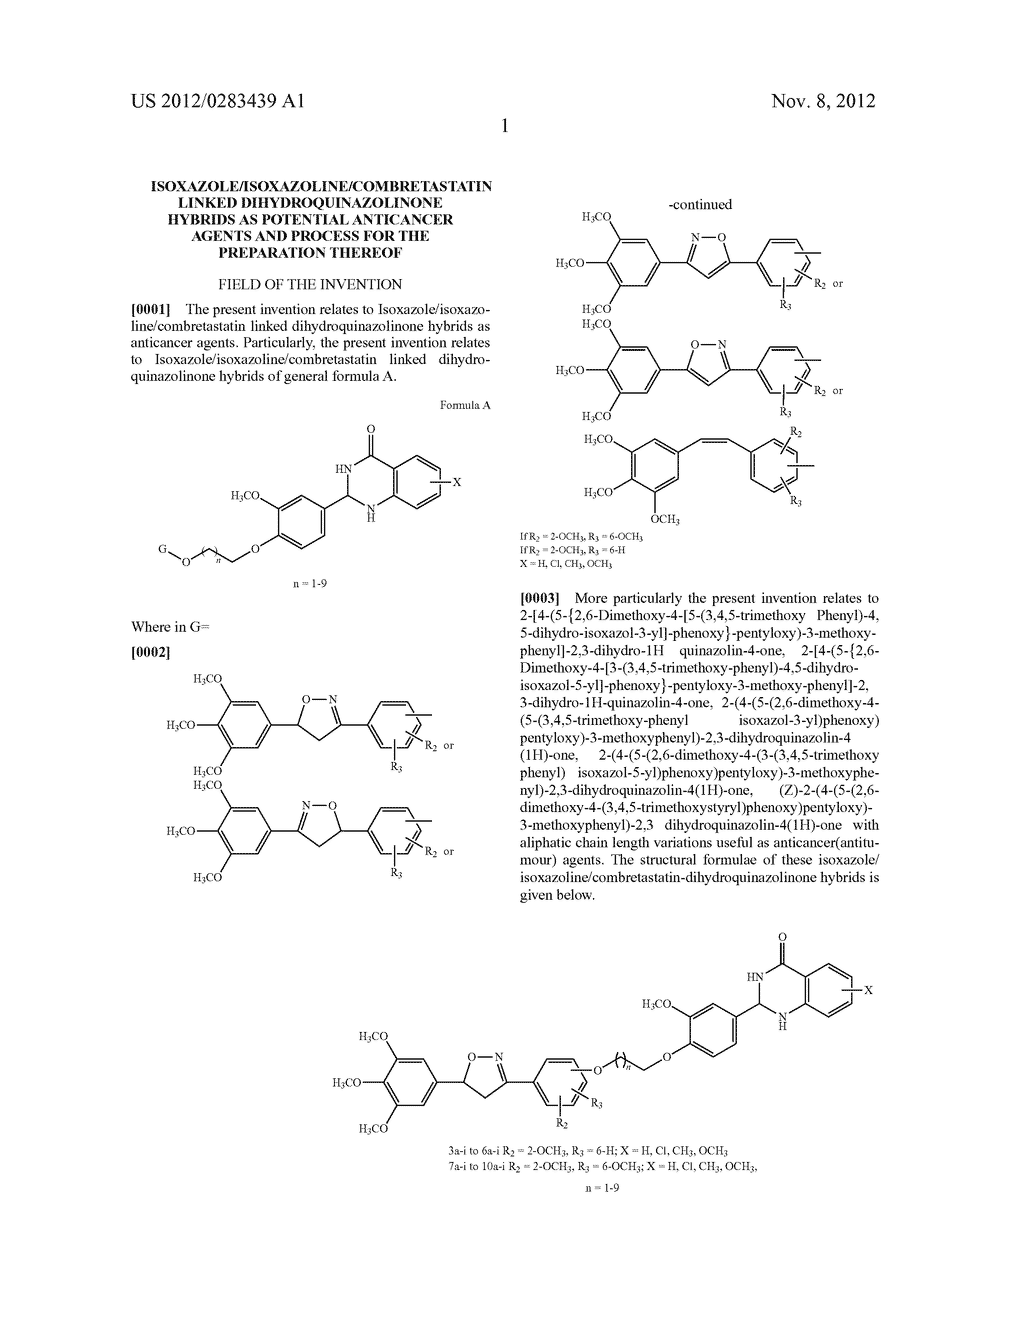 ISOXAZOLE/ISOXAZOLINE/COMBRETASTATIN LINKED DIHYDROQUINAZOLINONE HYBRIDS     AS POTENTIAL ANTICANCER AGENTS AND PROCESS FOR THE PREPARATION THEREOF - diagram, schematic, and image 03